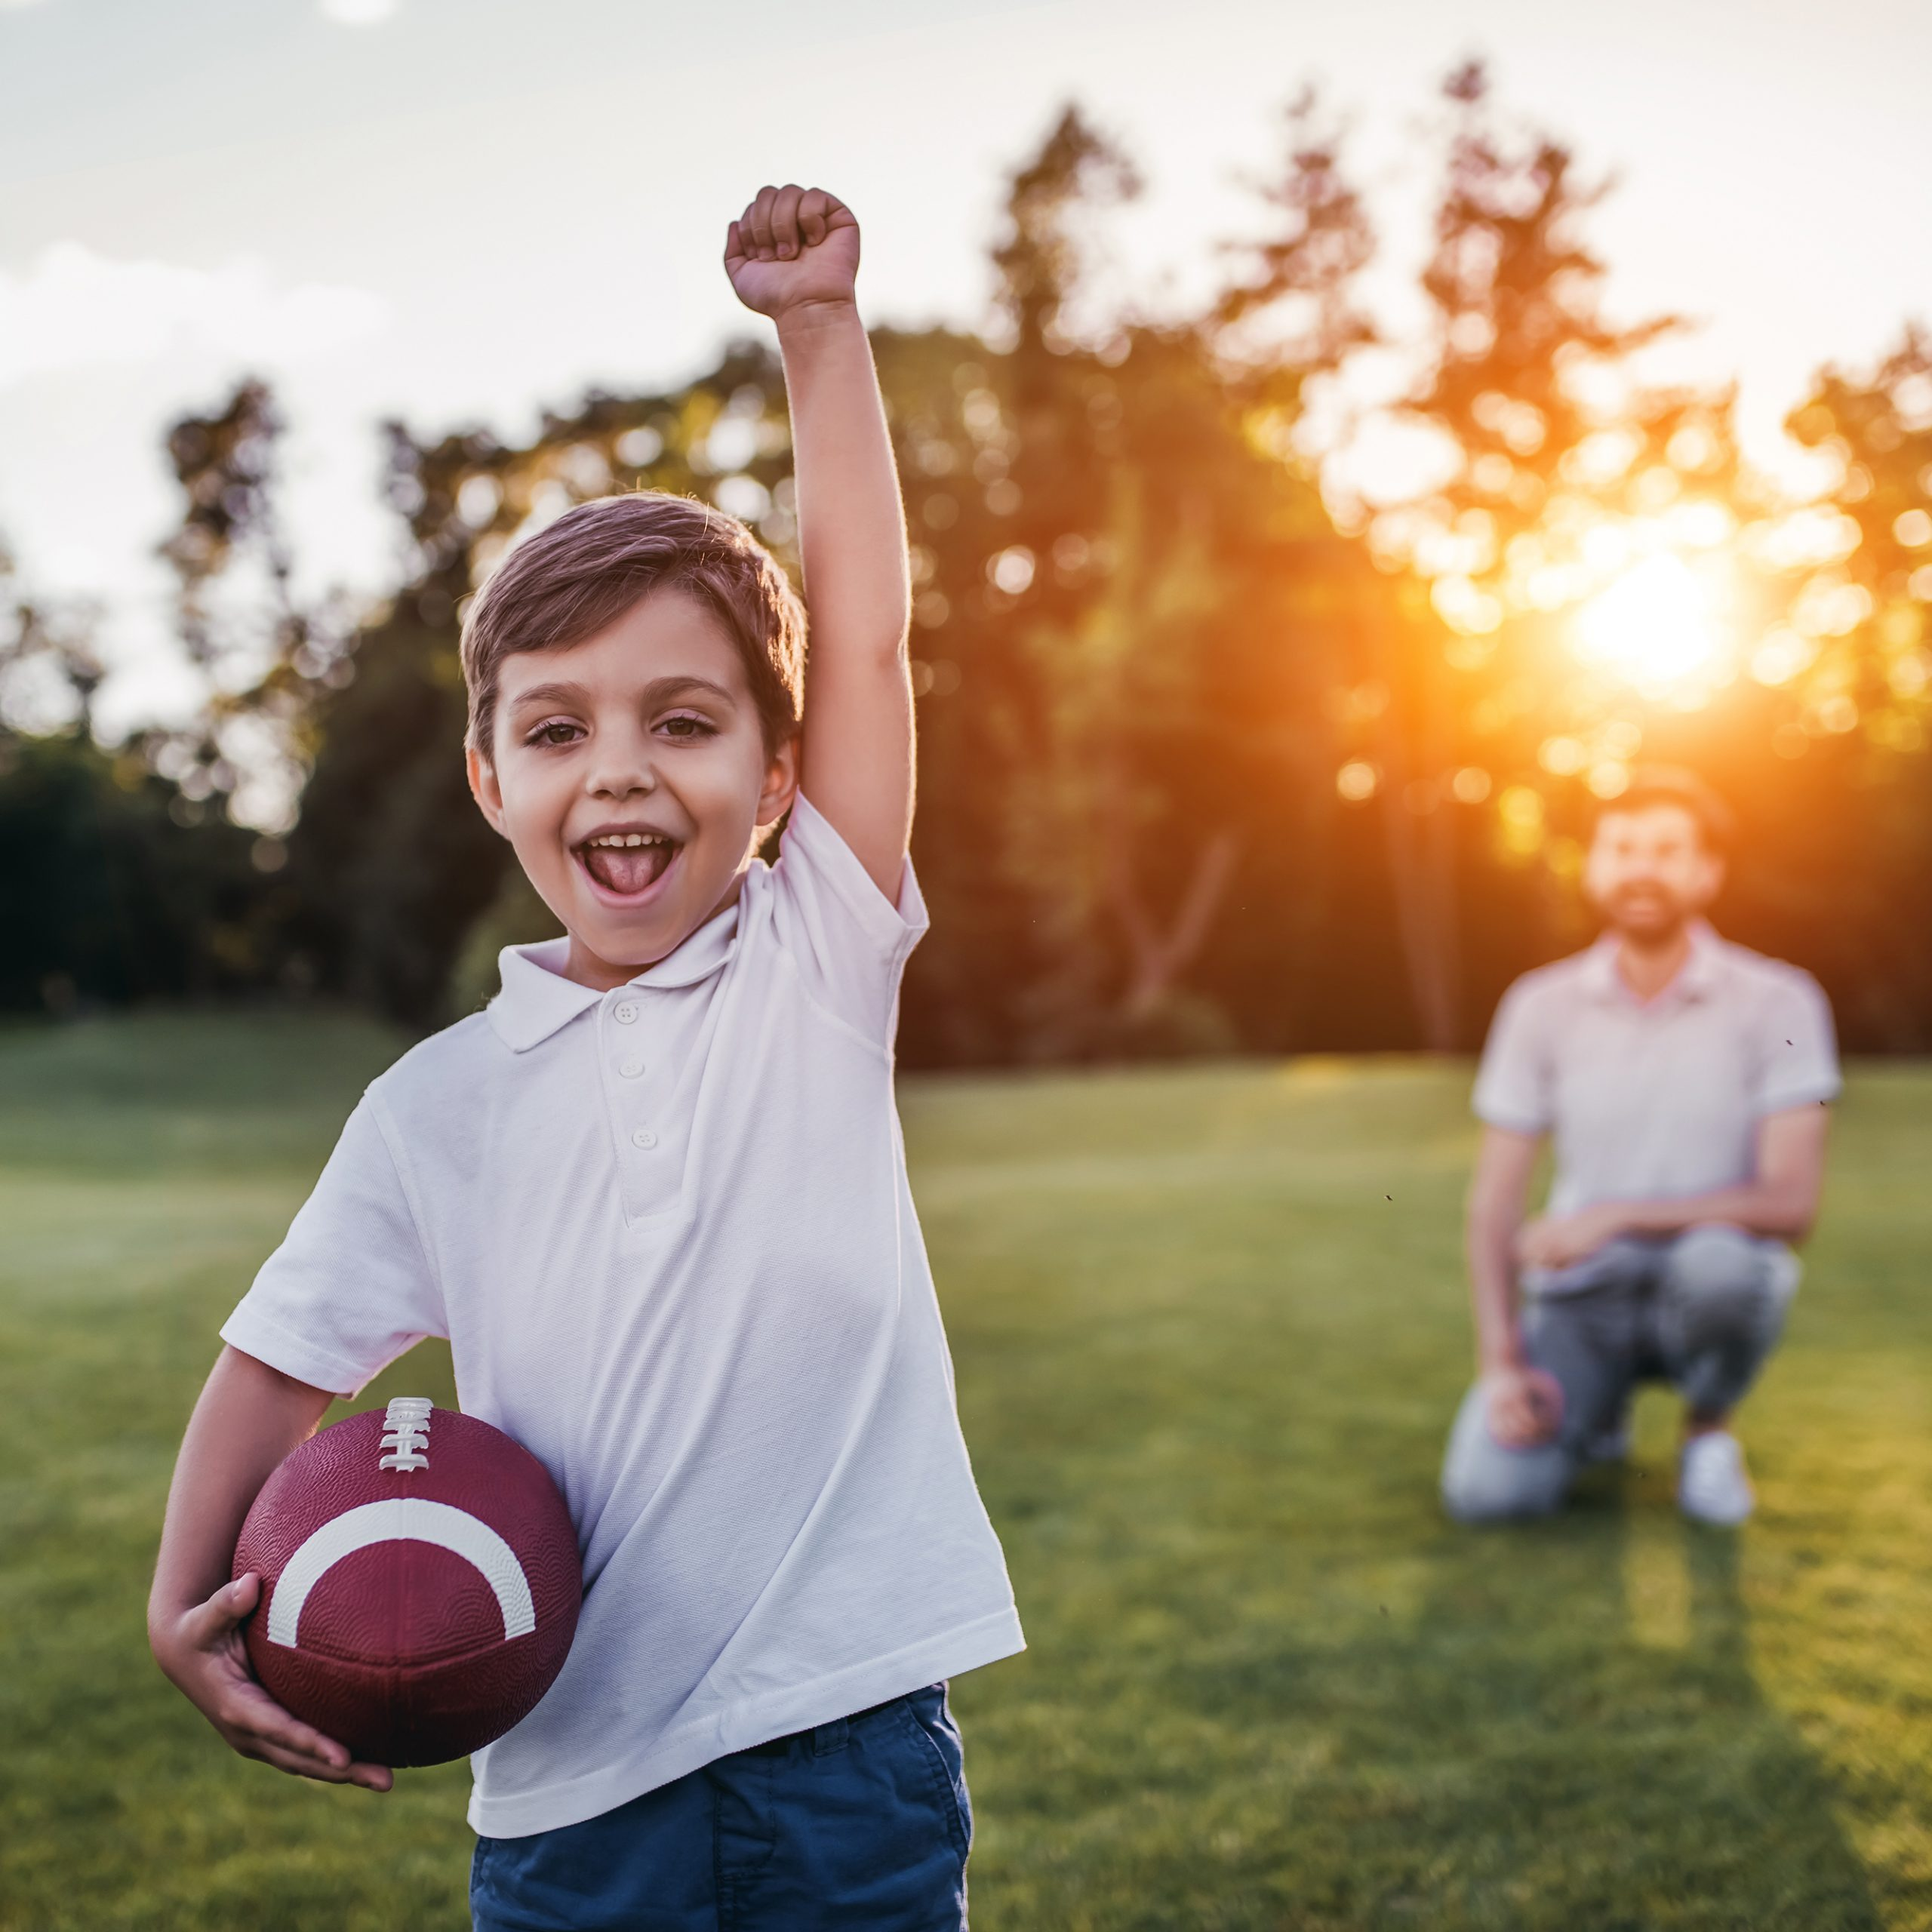 Kid playing catch with a football